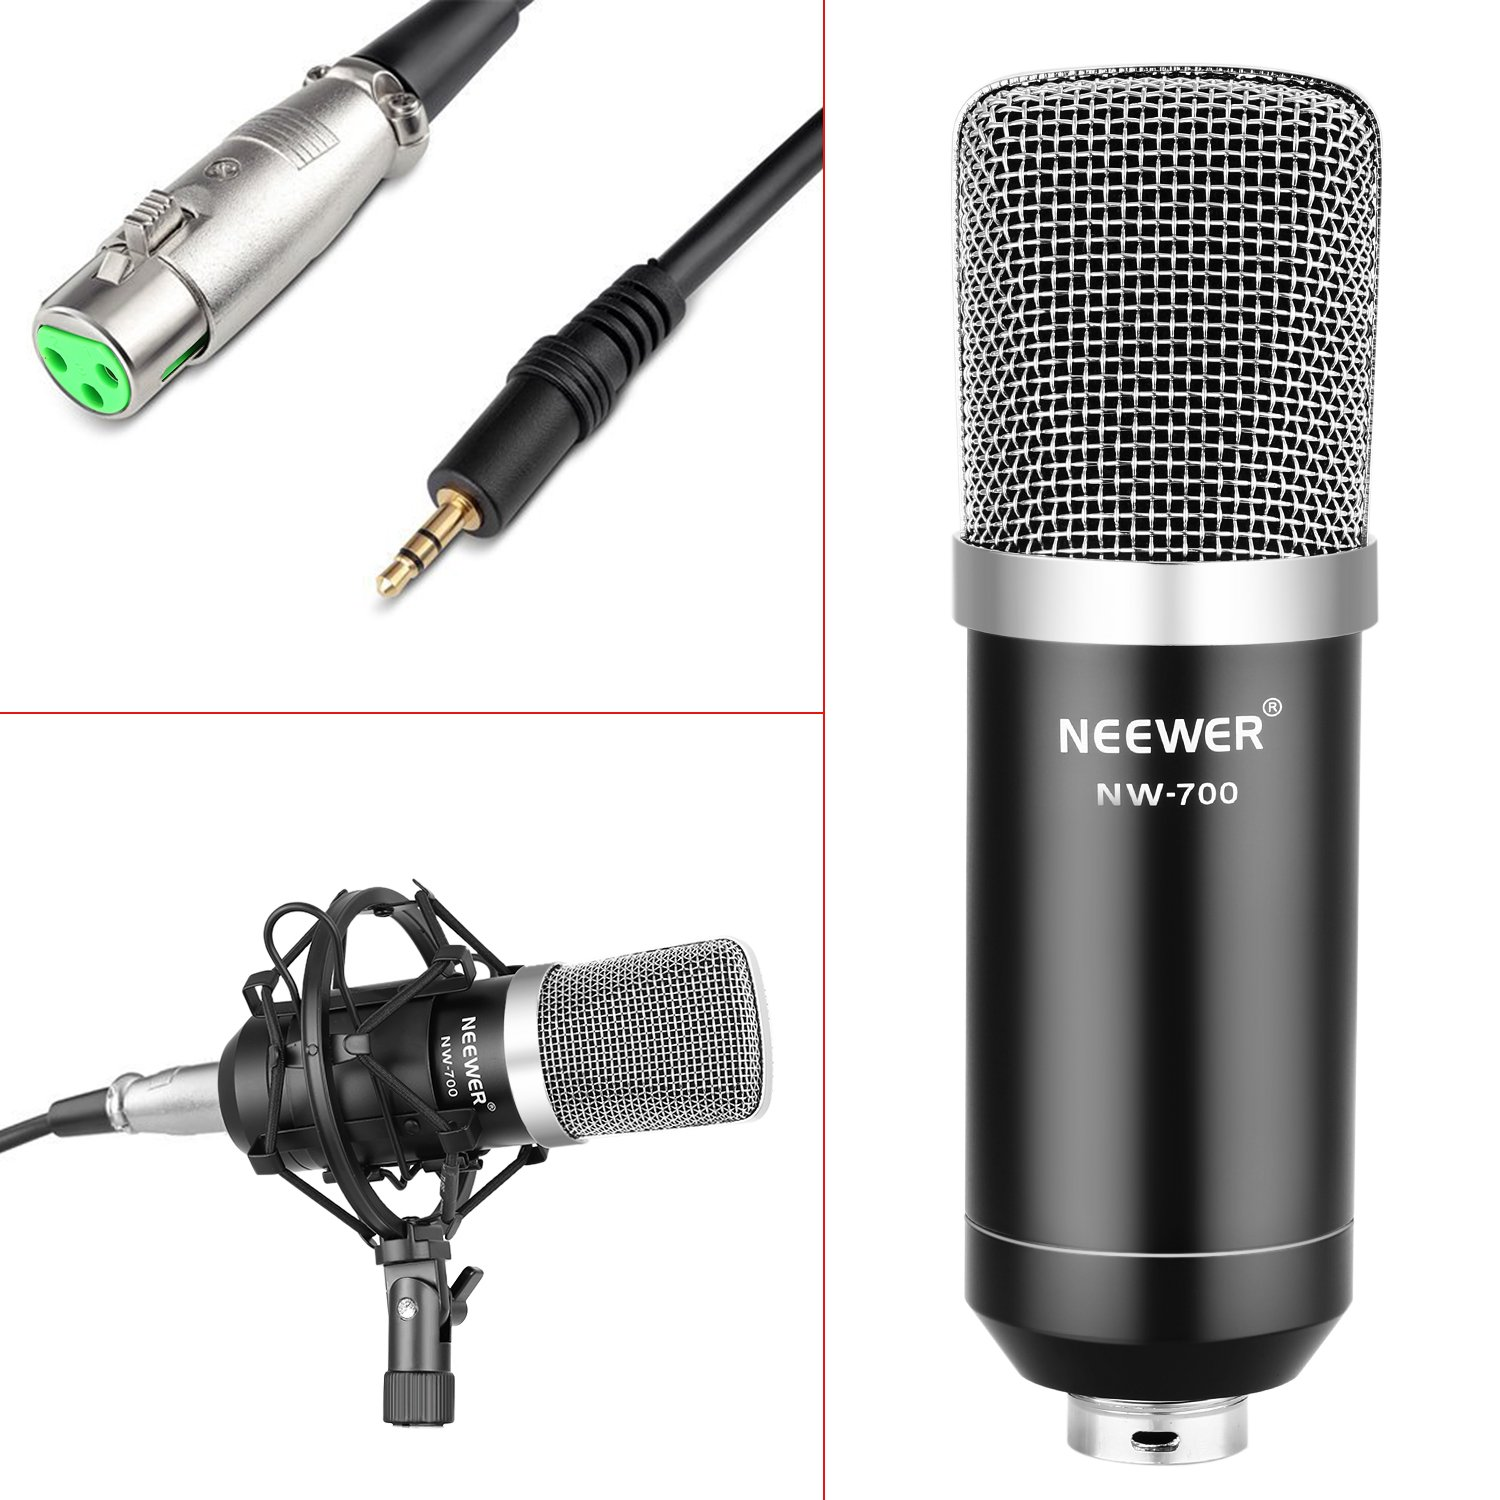 Neewer NW-700 Professional Studio Broadcasting Recording Condenser Microphone & NW-35 Adjustable Recording Microphone Suspension Scissor Arm Stand with Shock Mount and Mounting Clamp Kit by Neewer (Image #3)